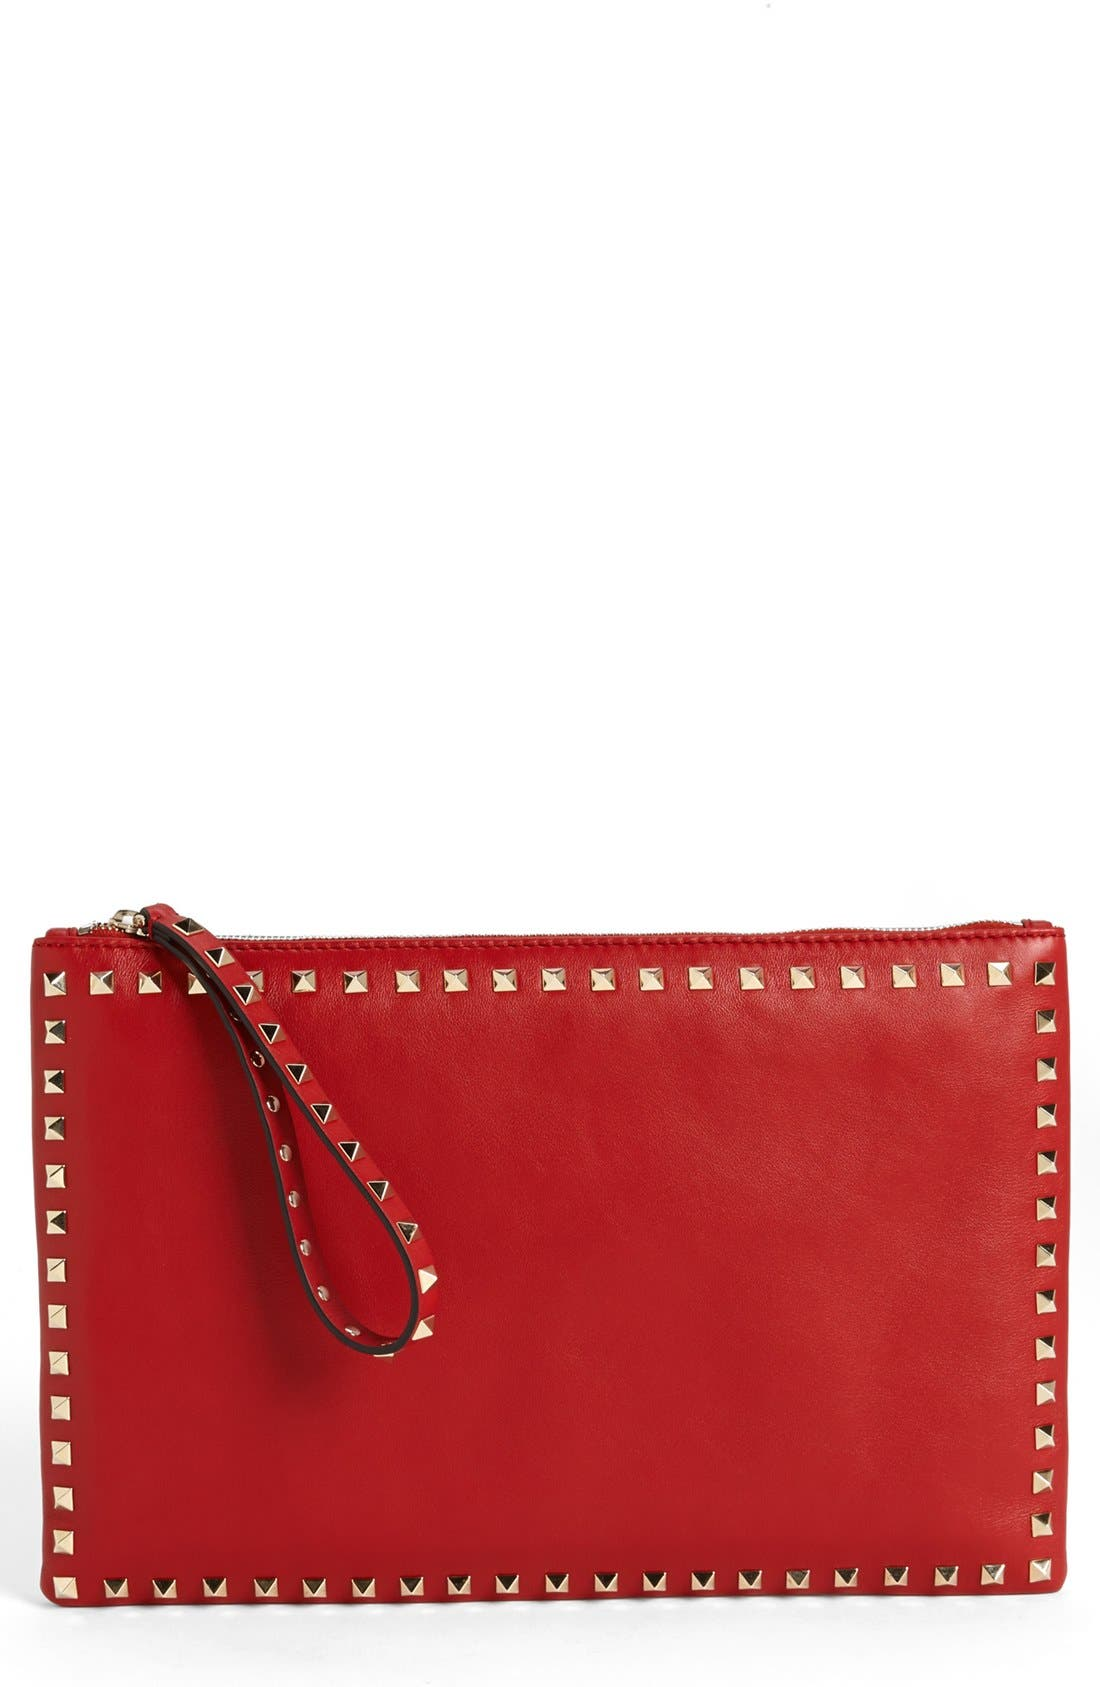 Alternate Image 1 Selected - Valentino 'Rockstud - Flat' Nappa Leather Clutch